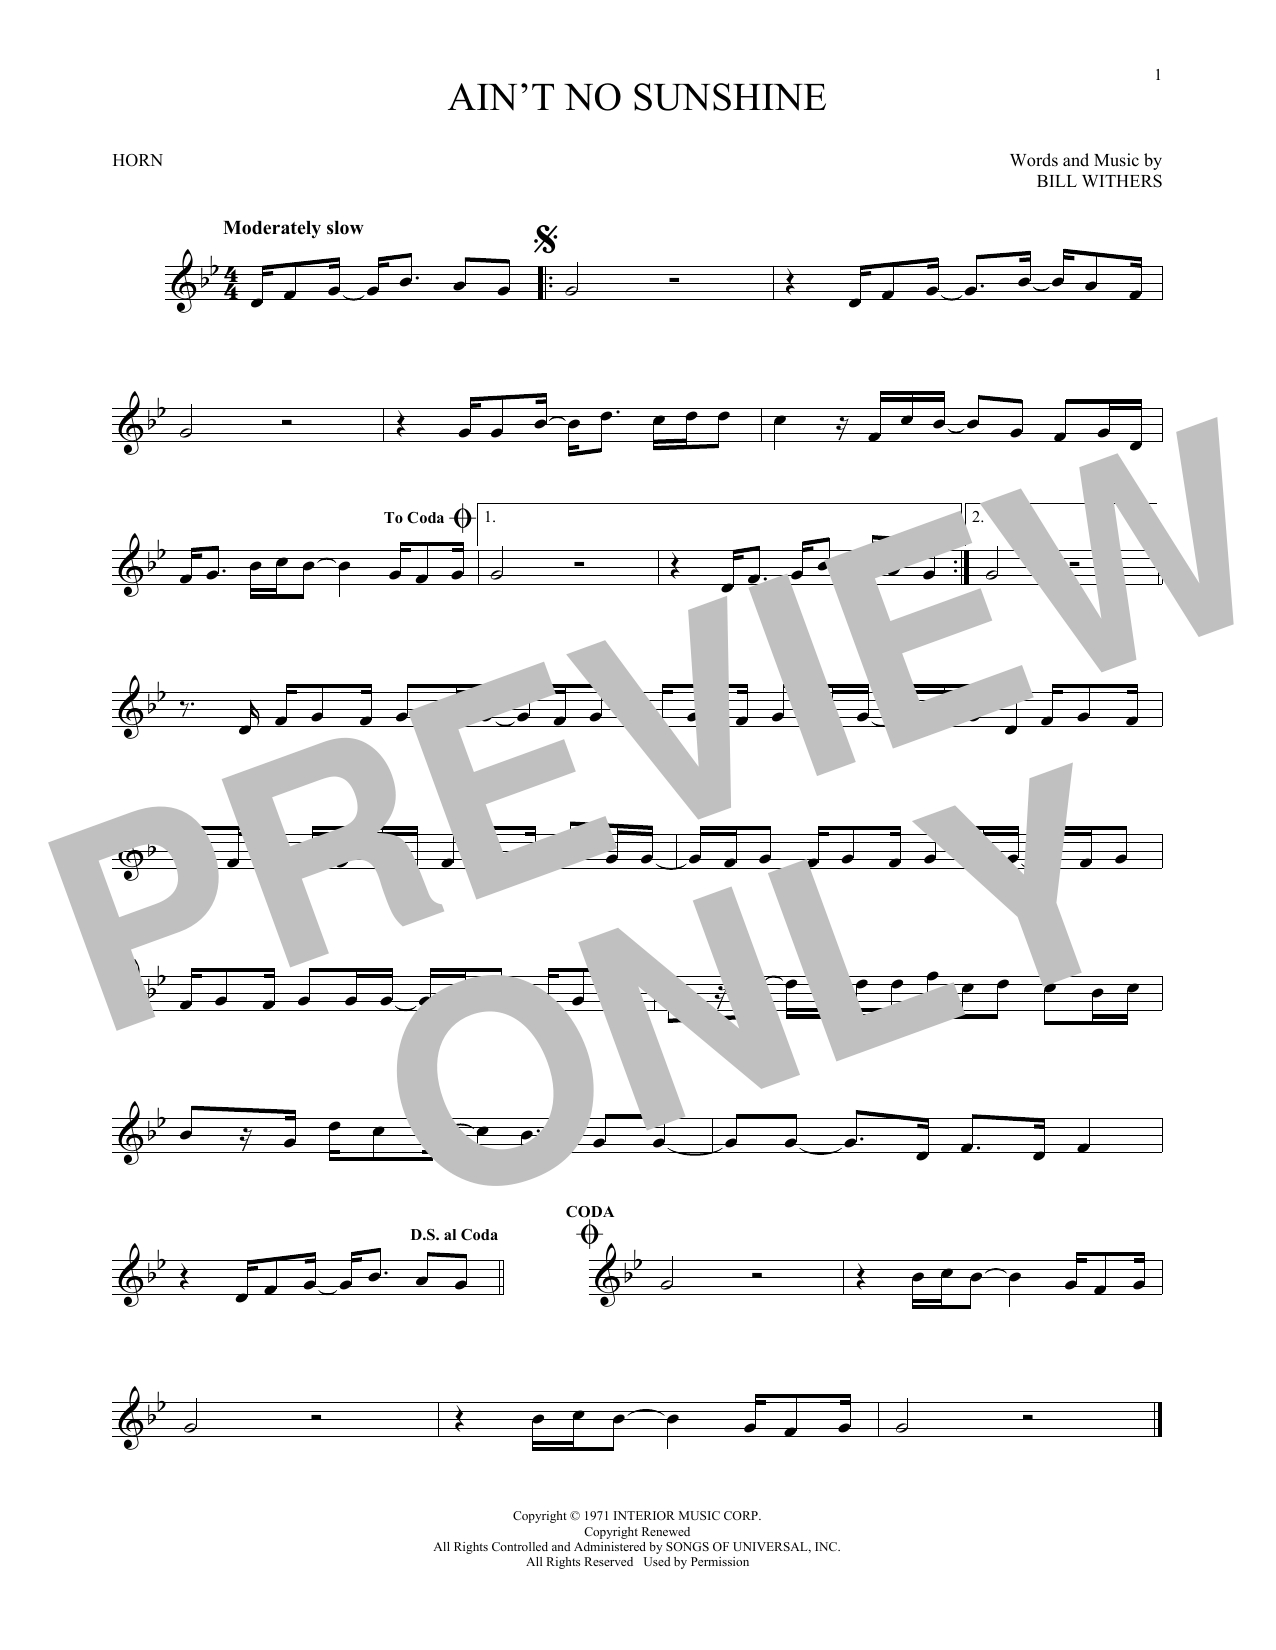 Ain T No Sunshine Chords Sheet Music Digital Files To Print Licensed Bill Withers Digital